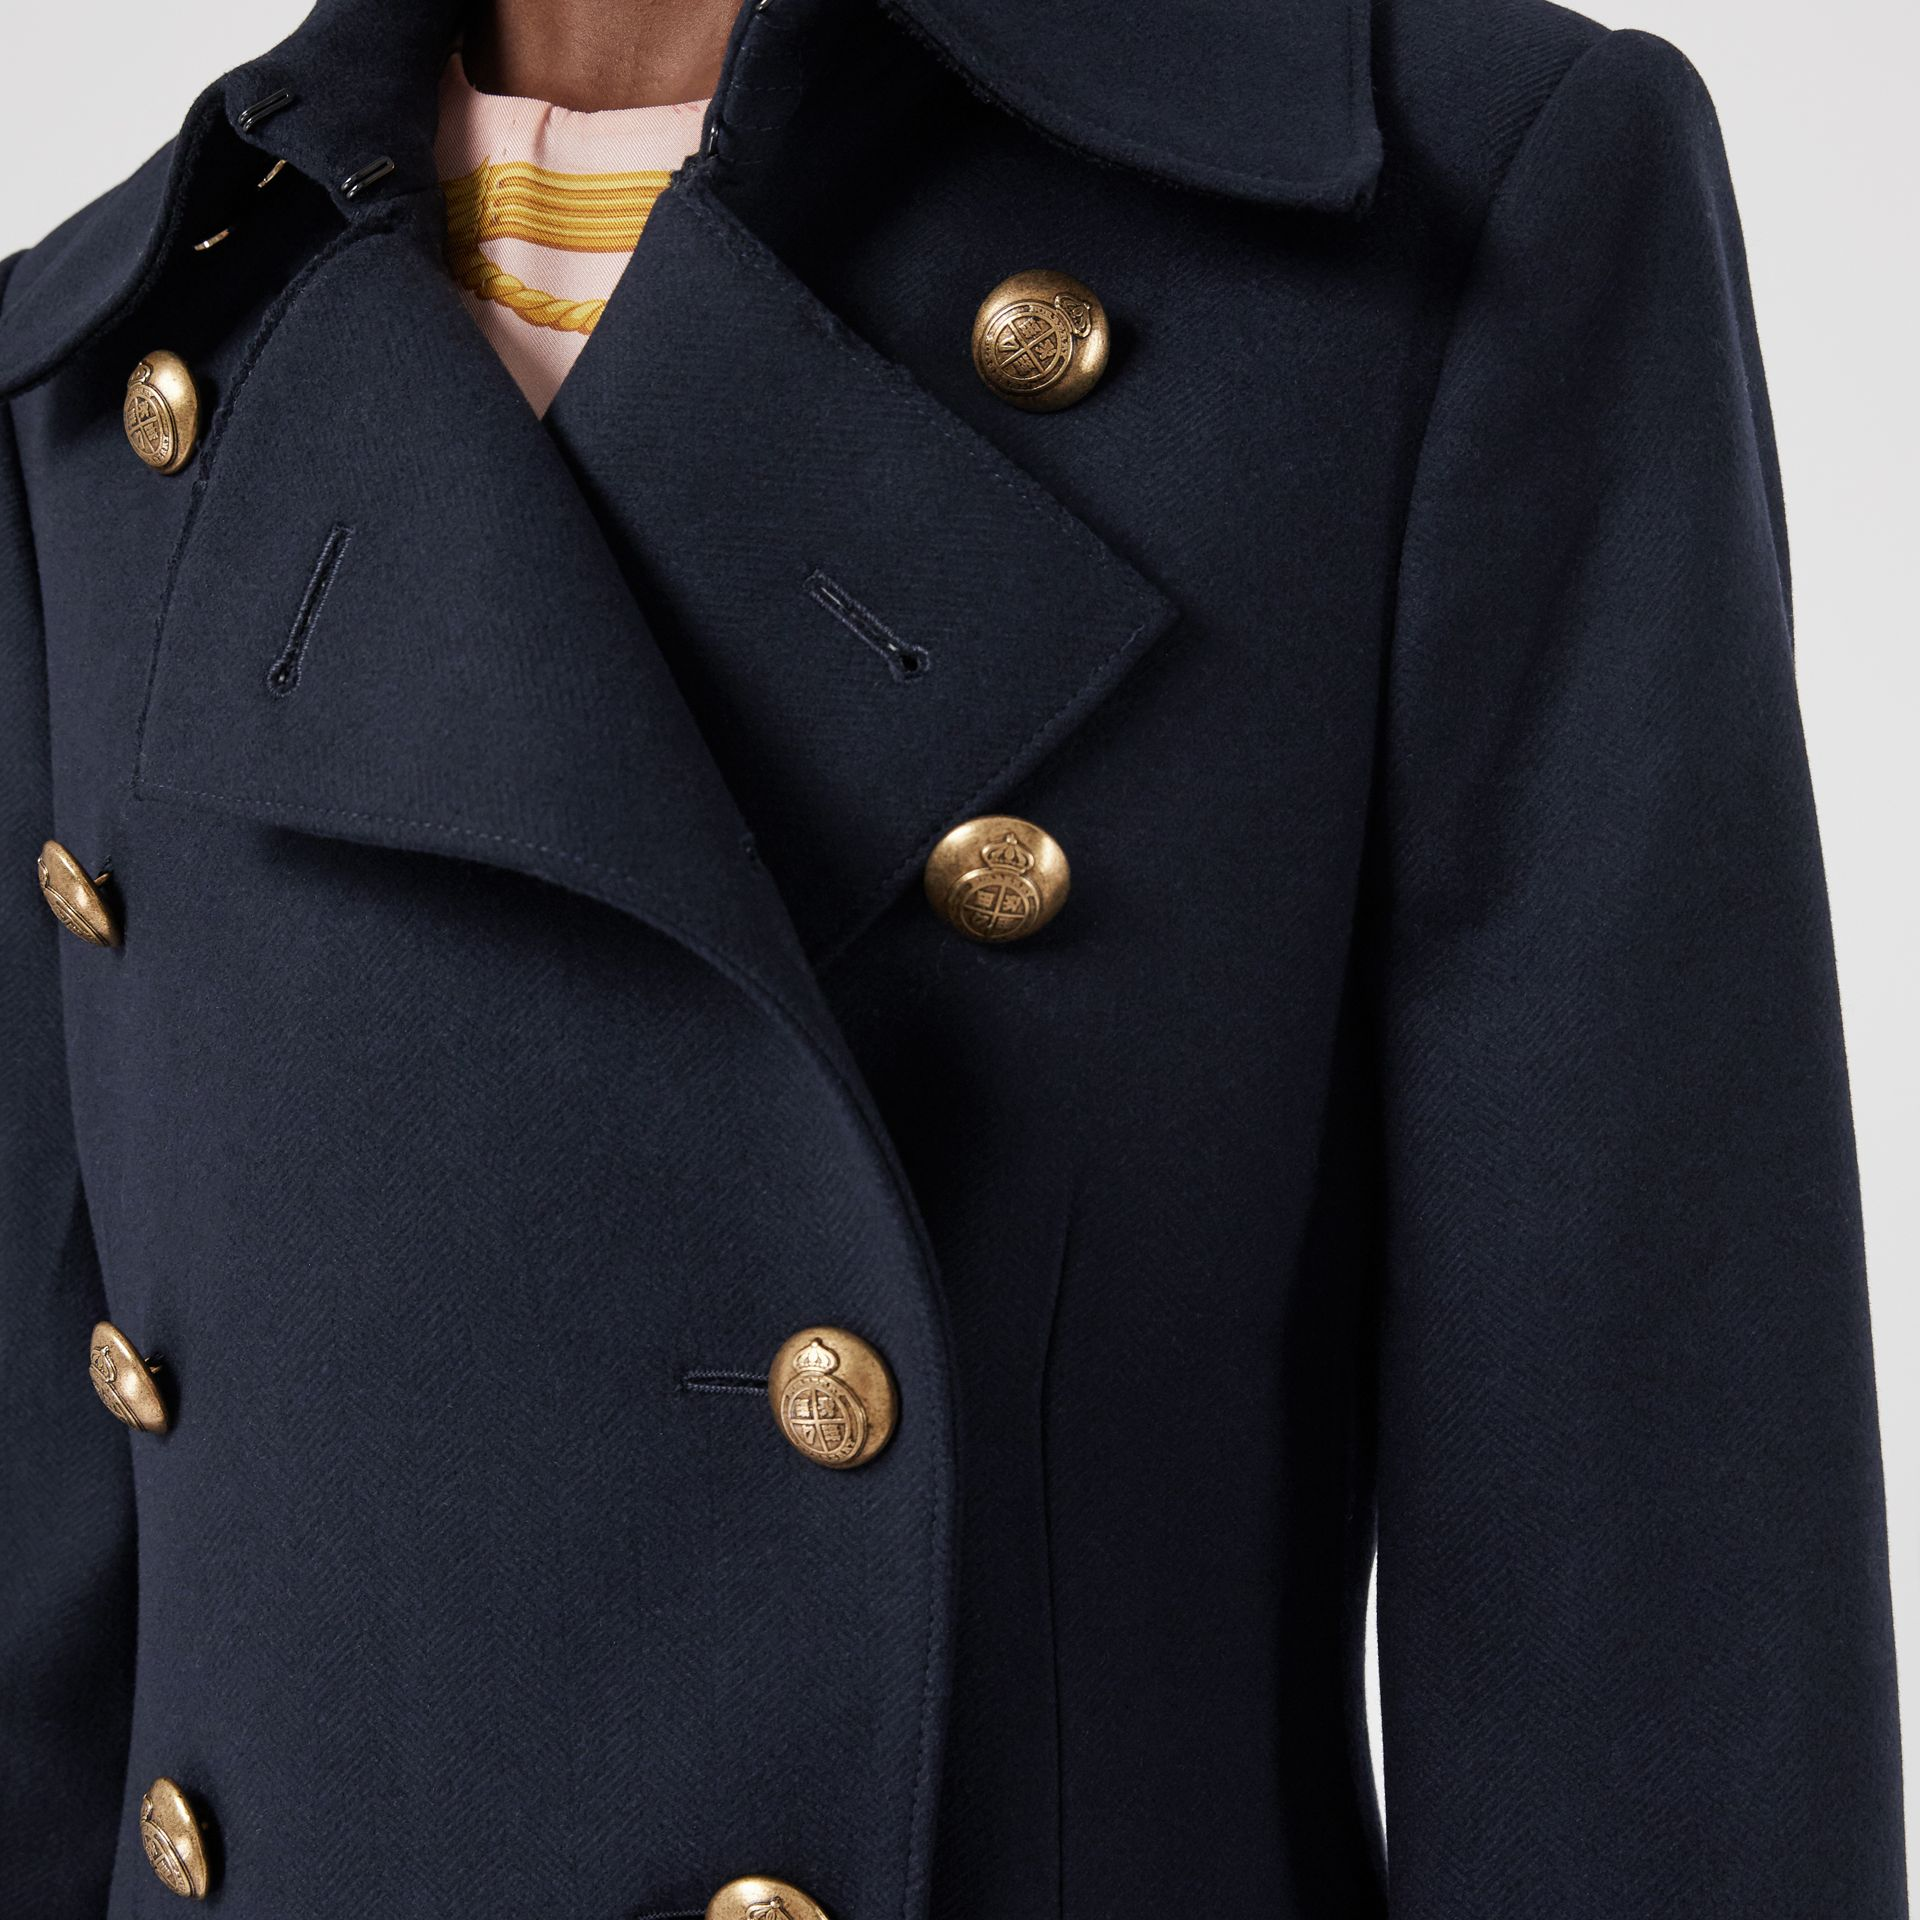 Double-breasted Wool Cashmere Blend Tailored Coat in Navy - Women | Burberry - gallery image 4